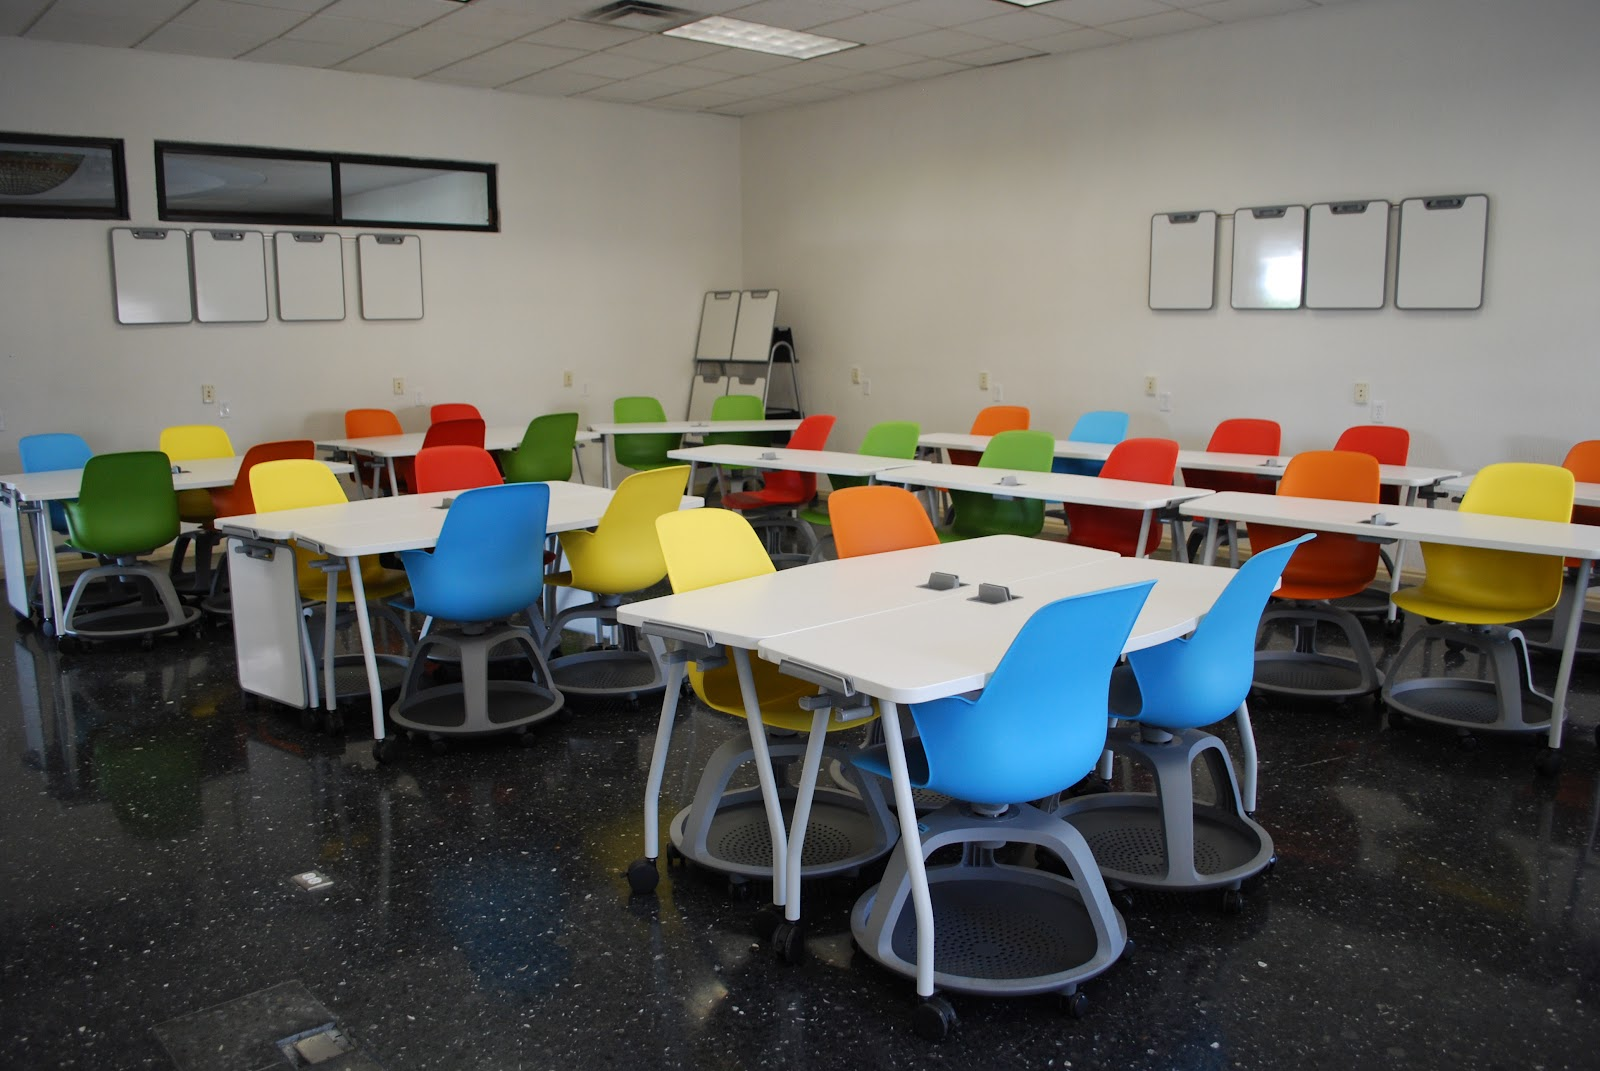 Redesigned classroom with